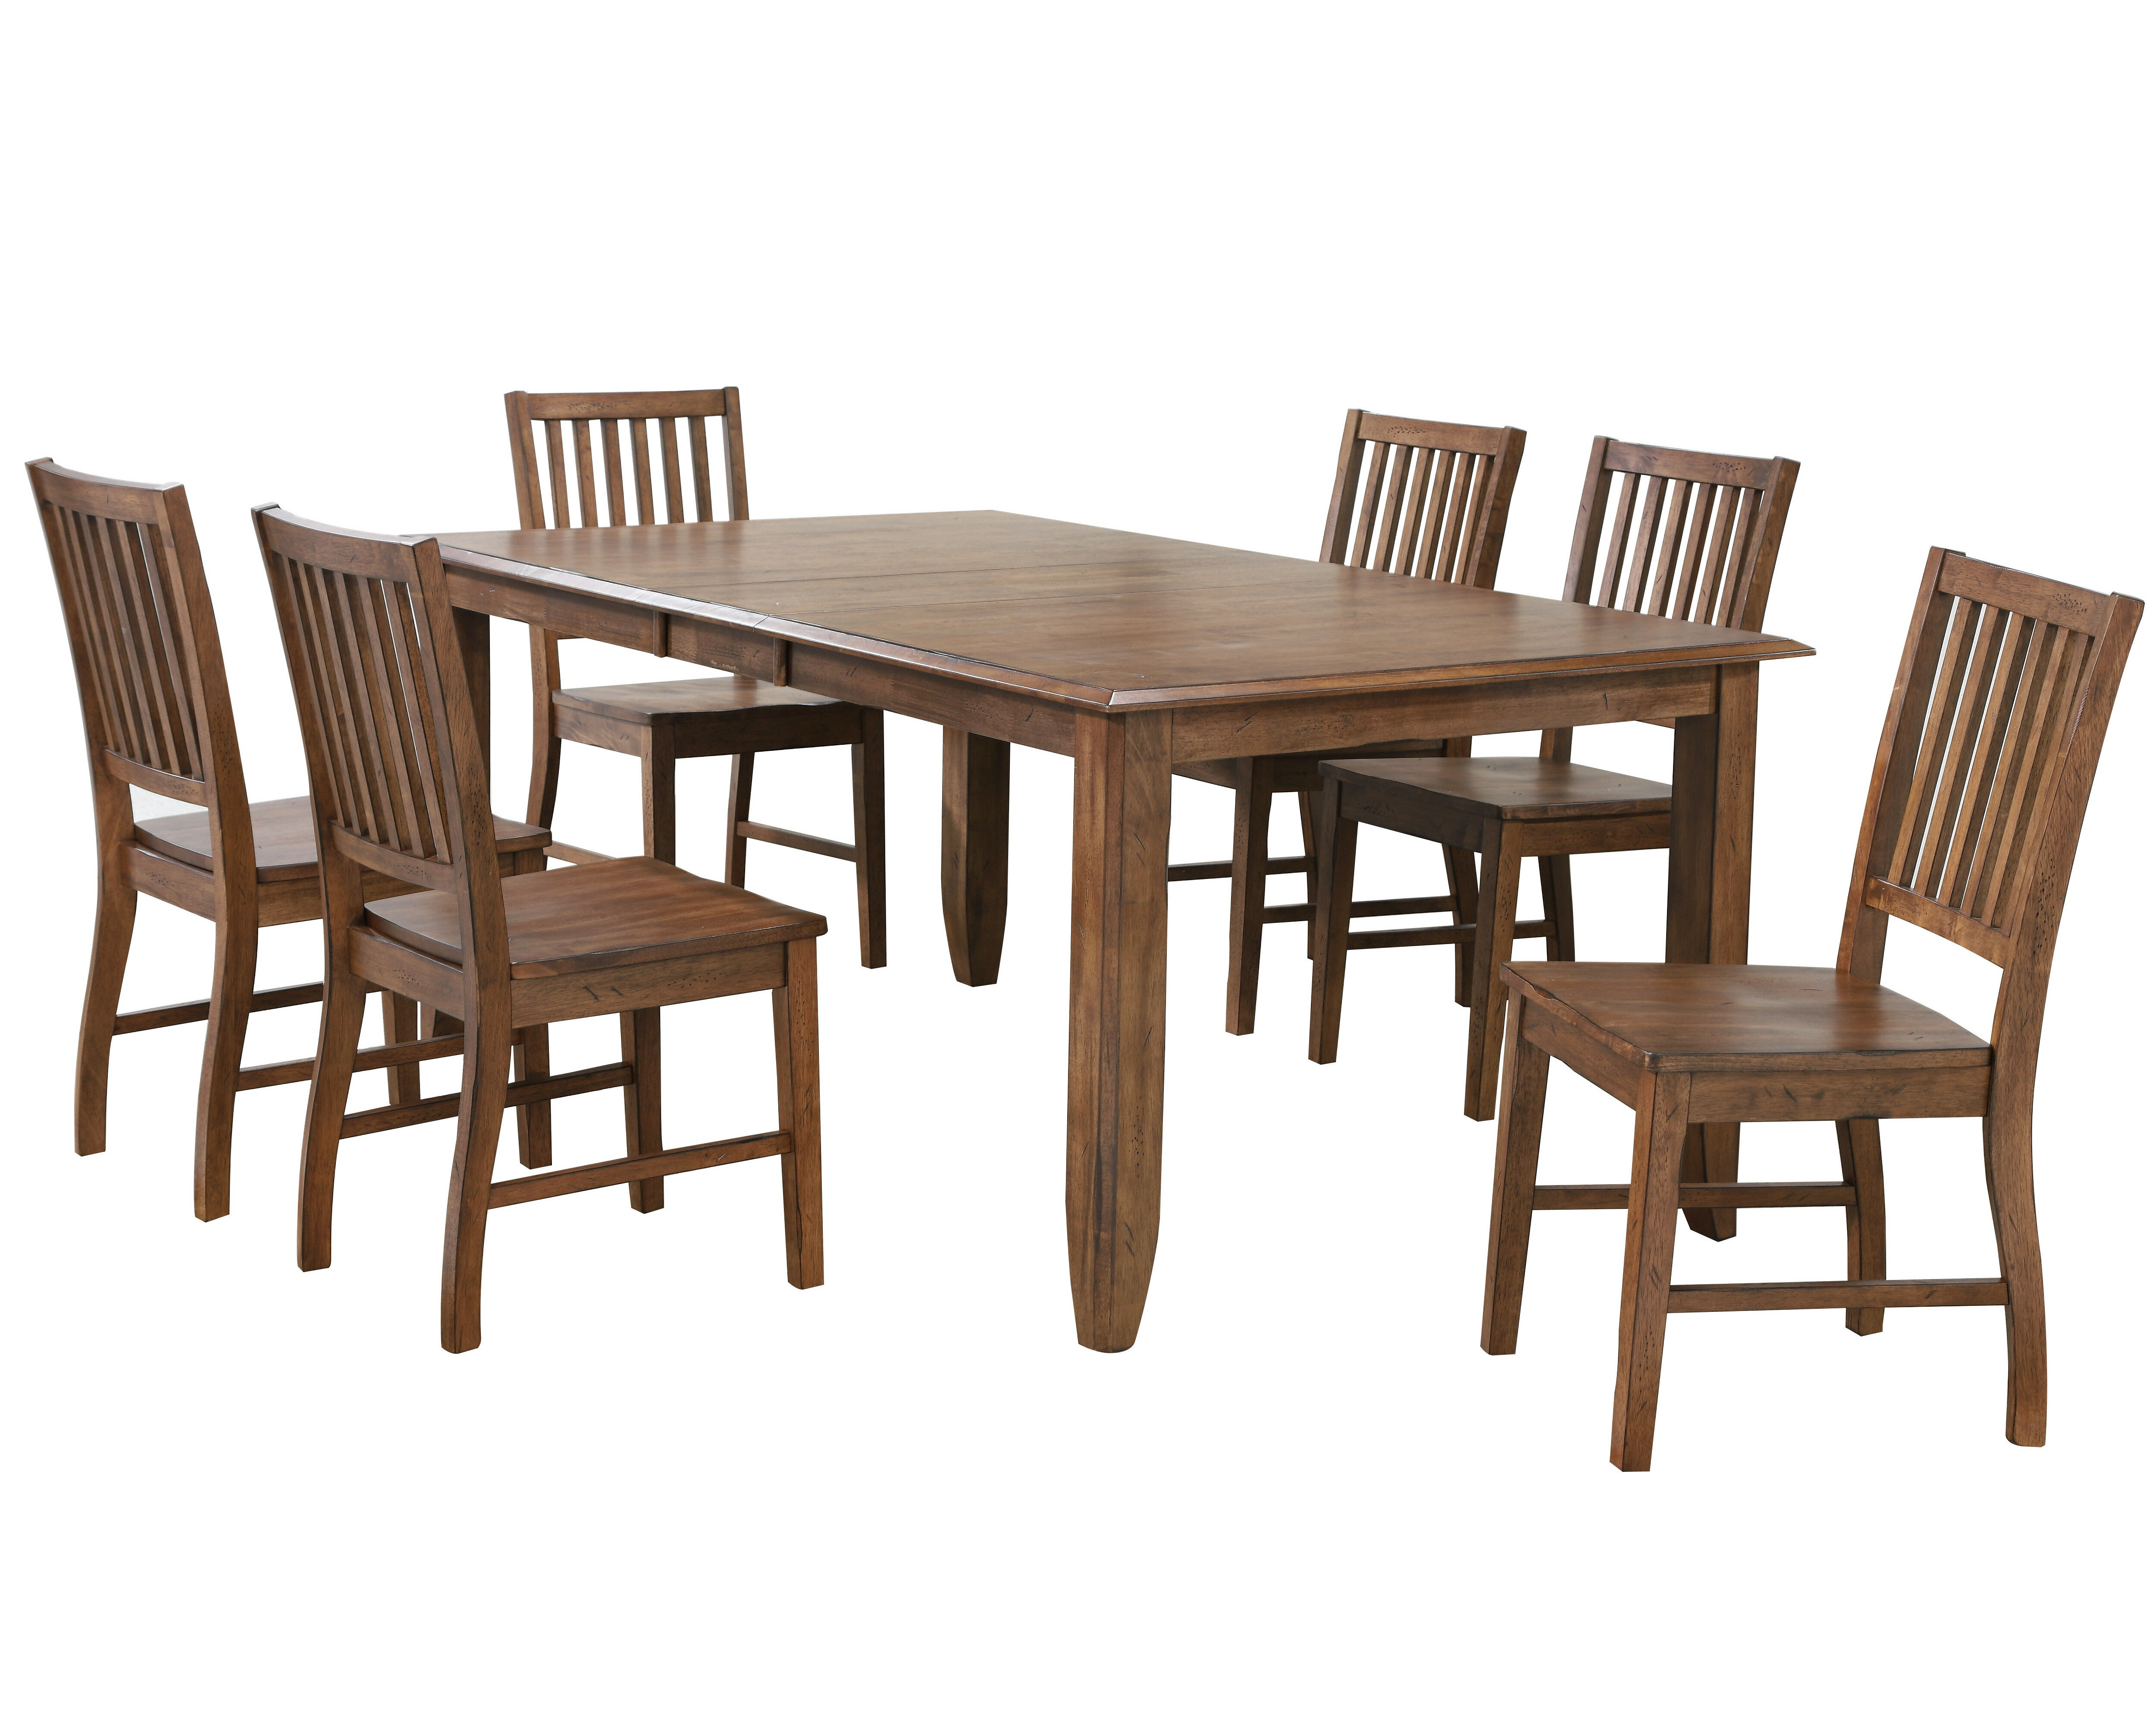 Loon Peak Huerfano Valley 7 Piece Extendable Solid Wood Dining Set Reviews Wayfair